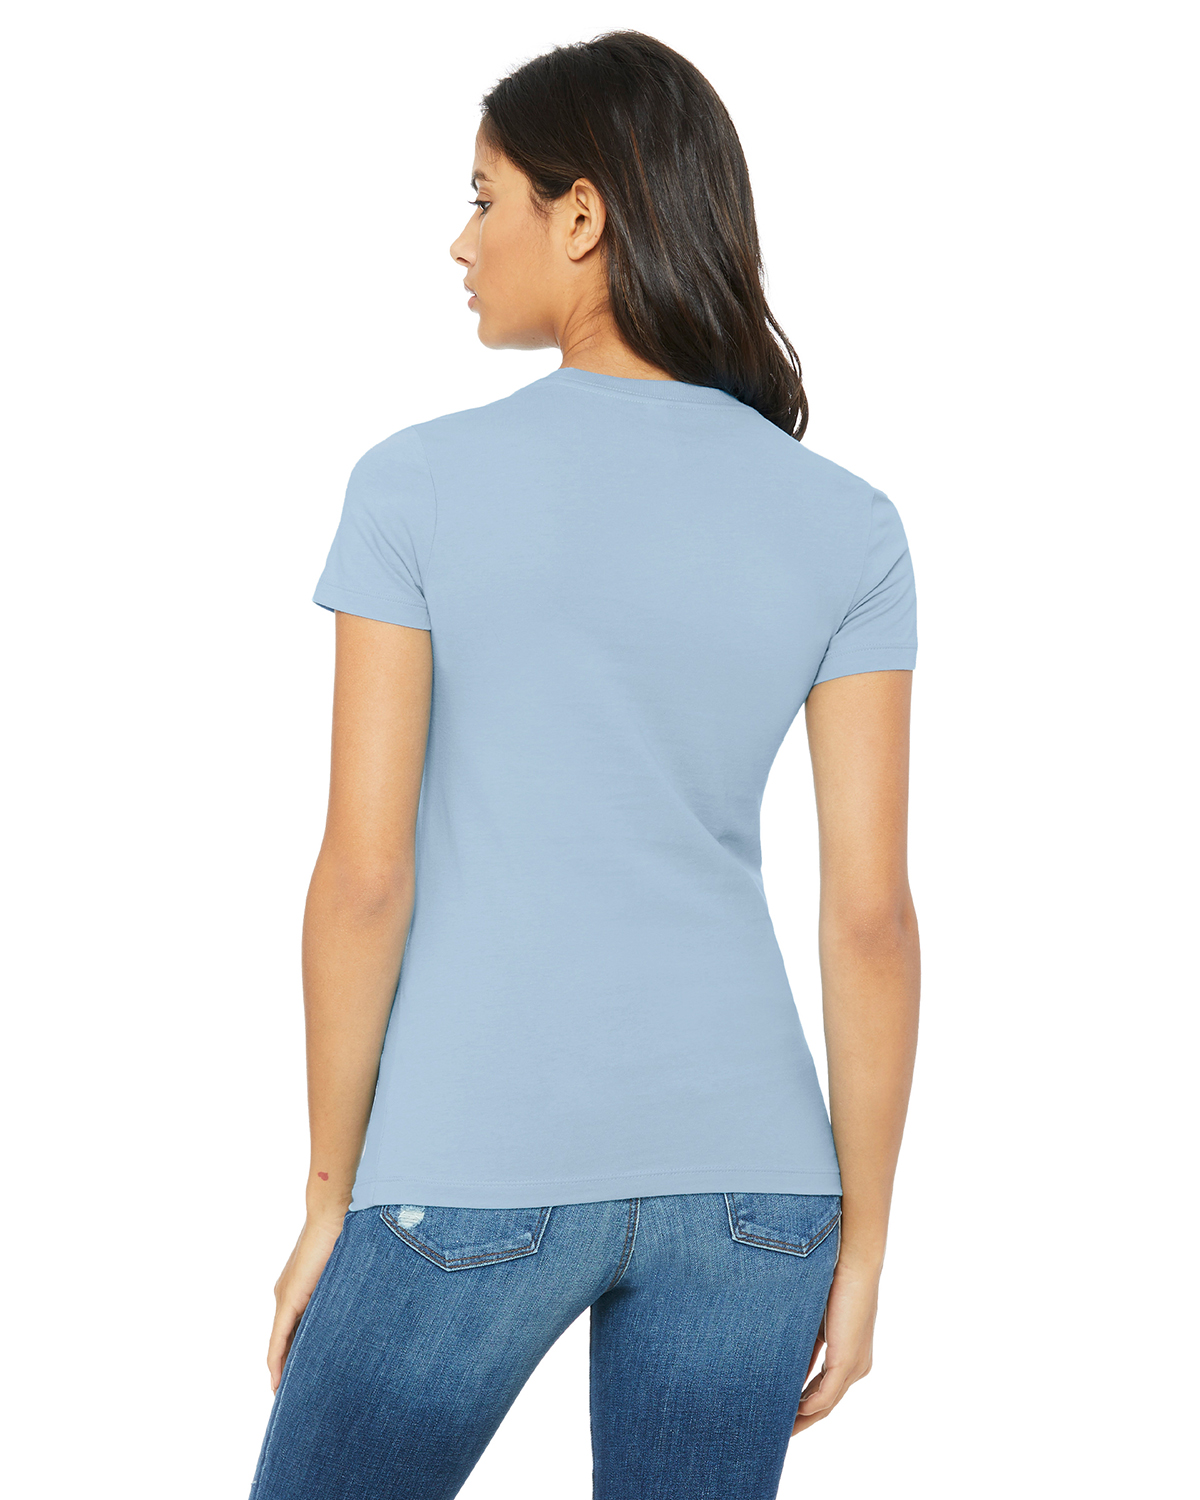 New Bella Ladies Favorite Tee Cotton Longer T Shirt Top